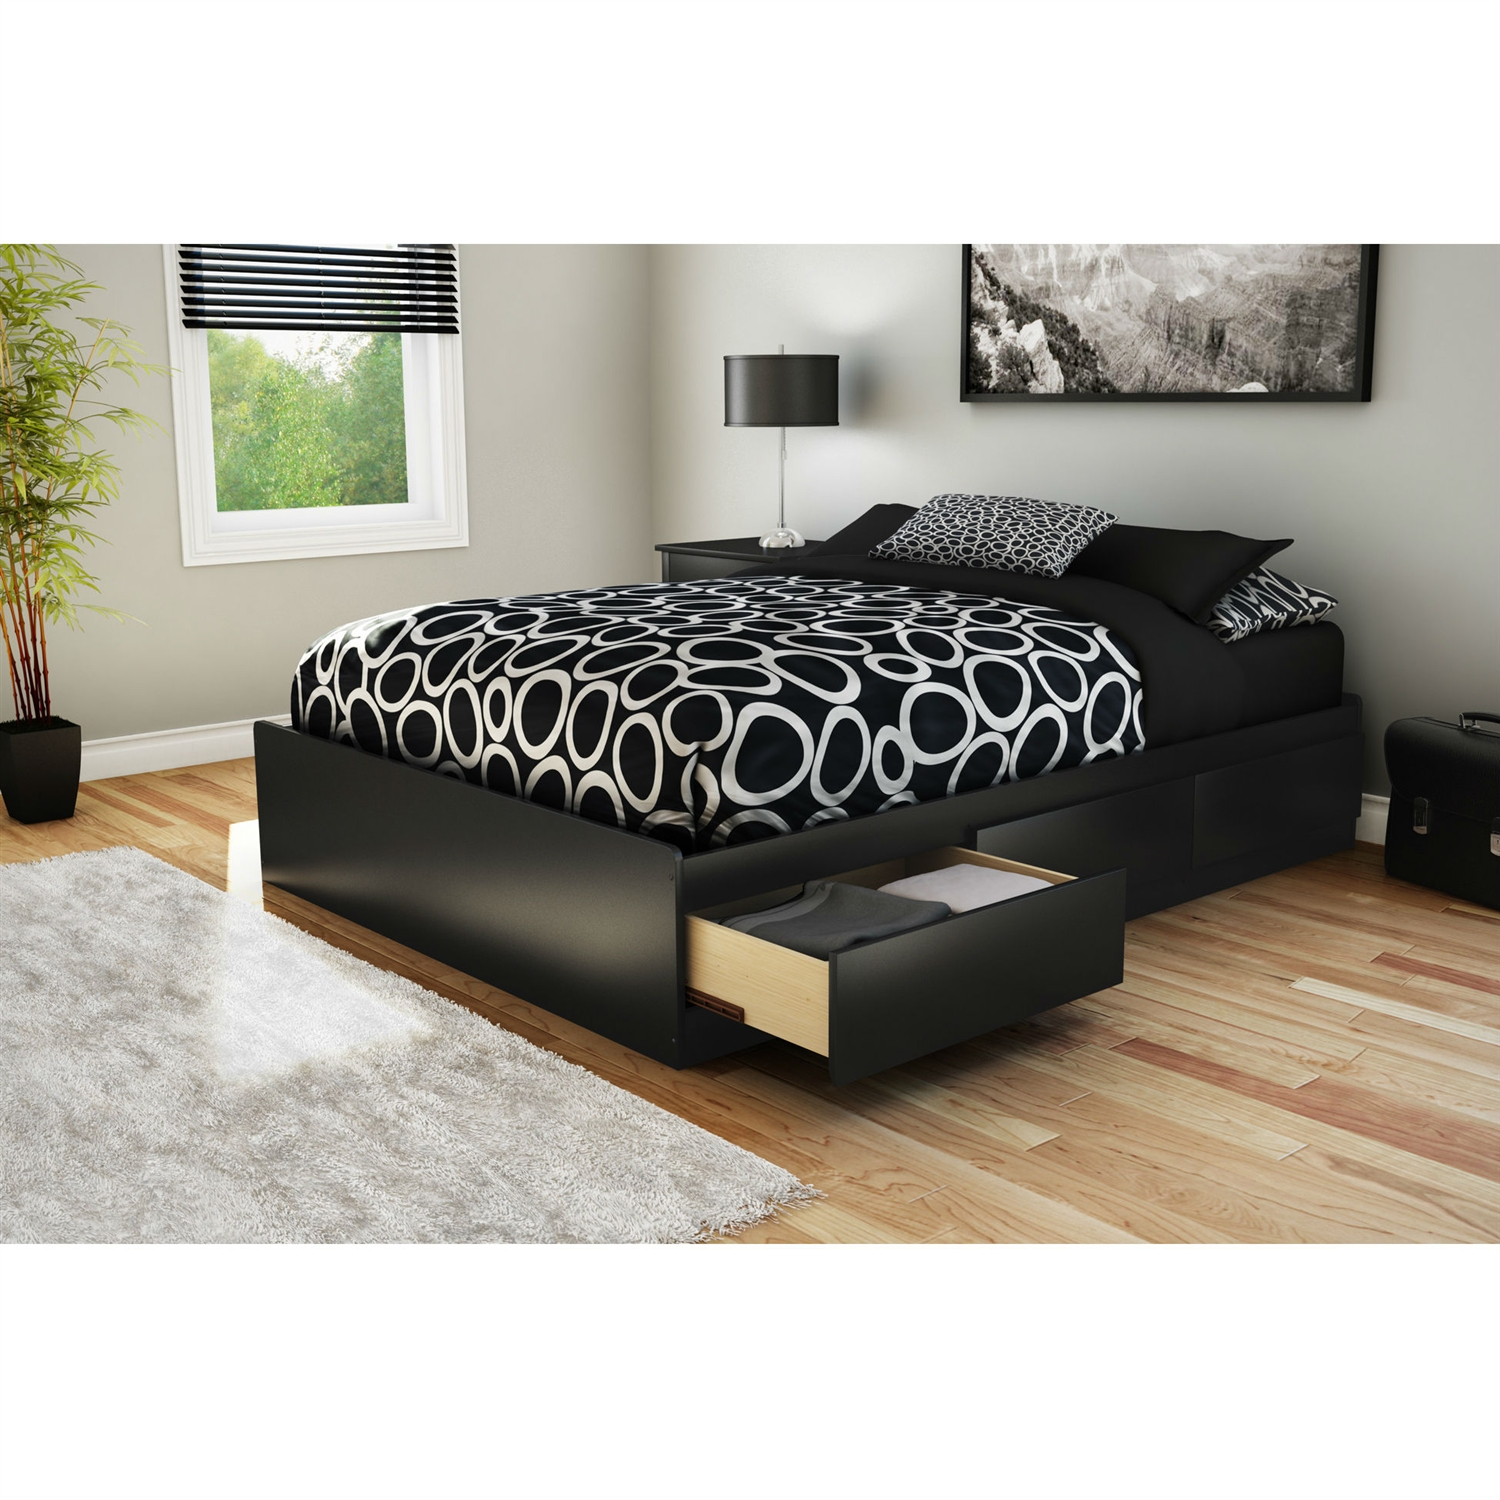 Full size Modern Platform Bed with 3 Storage Drawers in Black ...